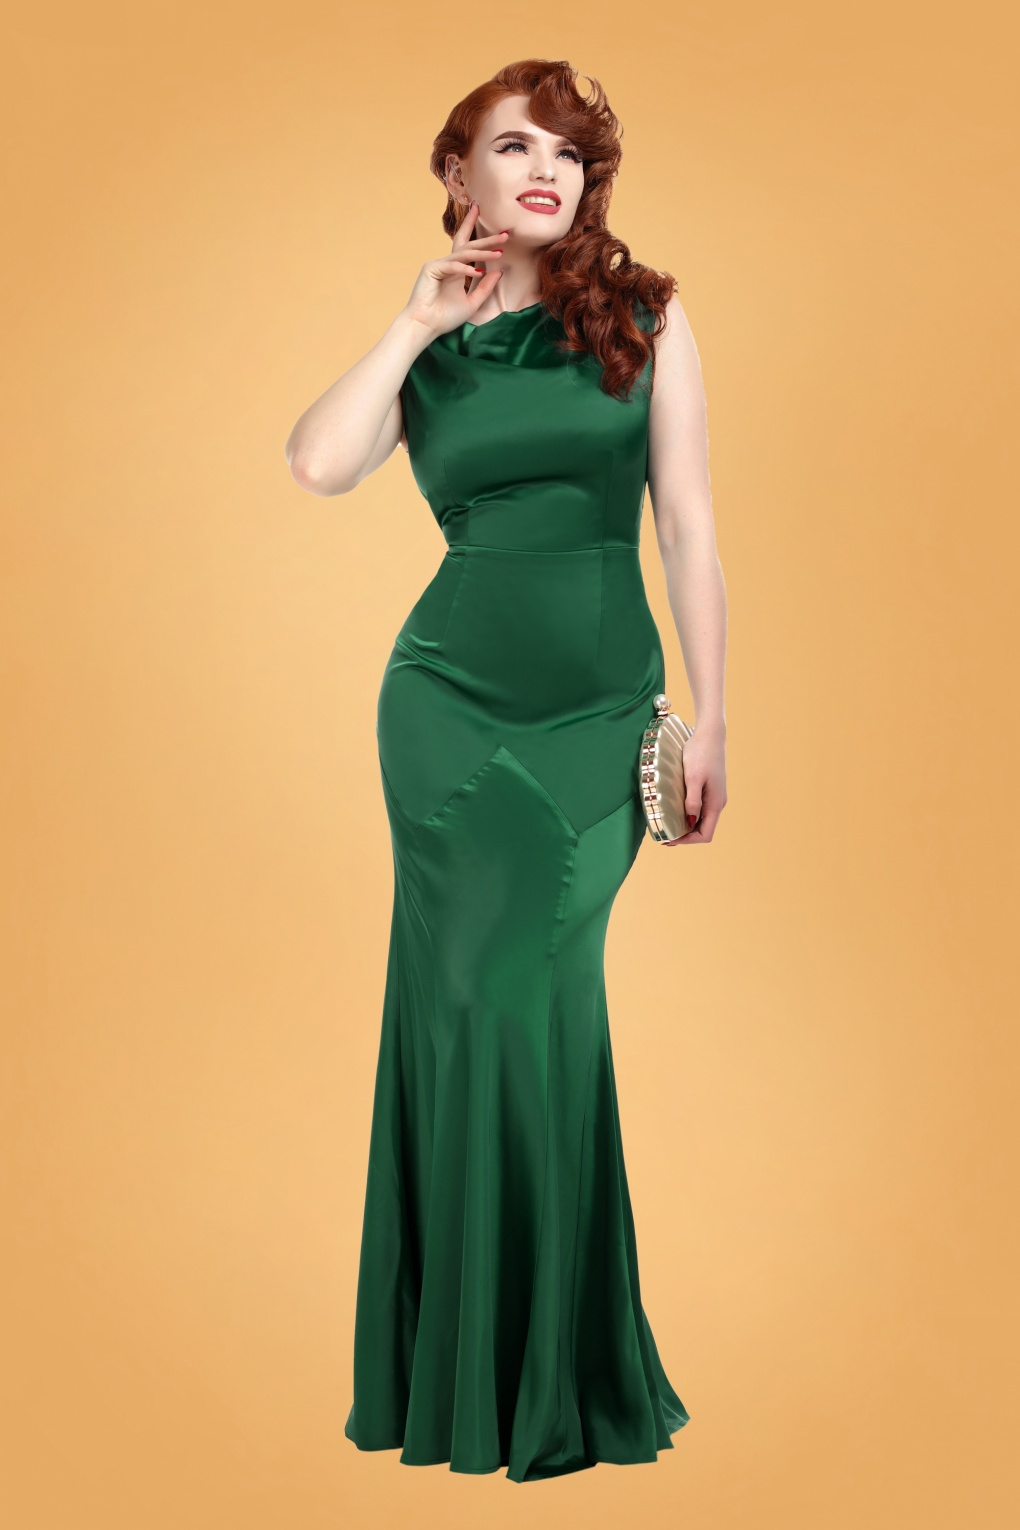 1930s Evening Dresses | Old Hollywood Dress 30s Ingrid Fishtail Maxi Dress in Emerald Green £92.58 AT vintagedancer.com